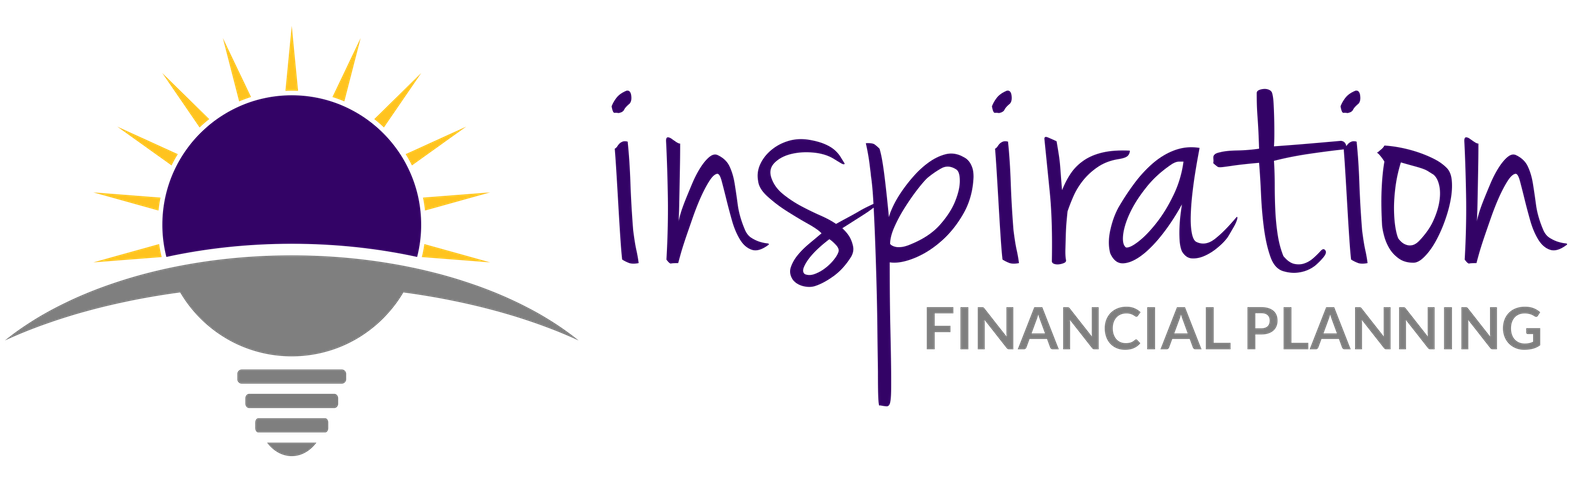 Inspiration Financial Planning